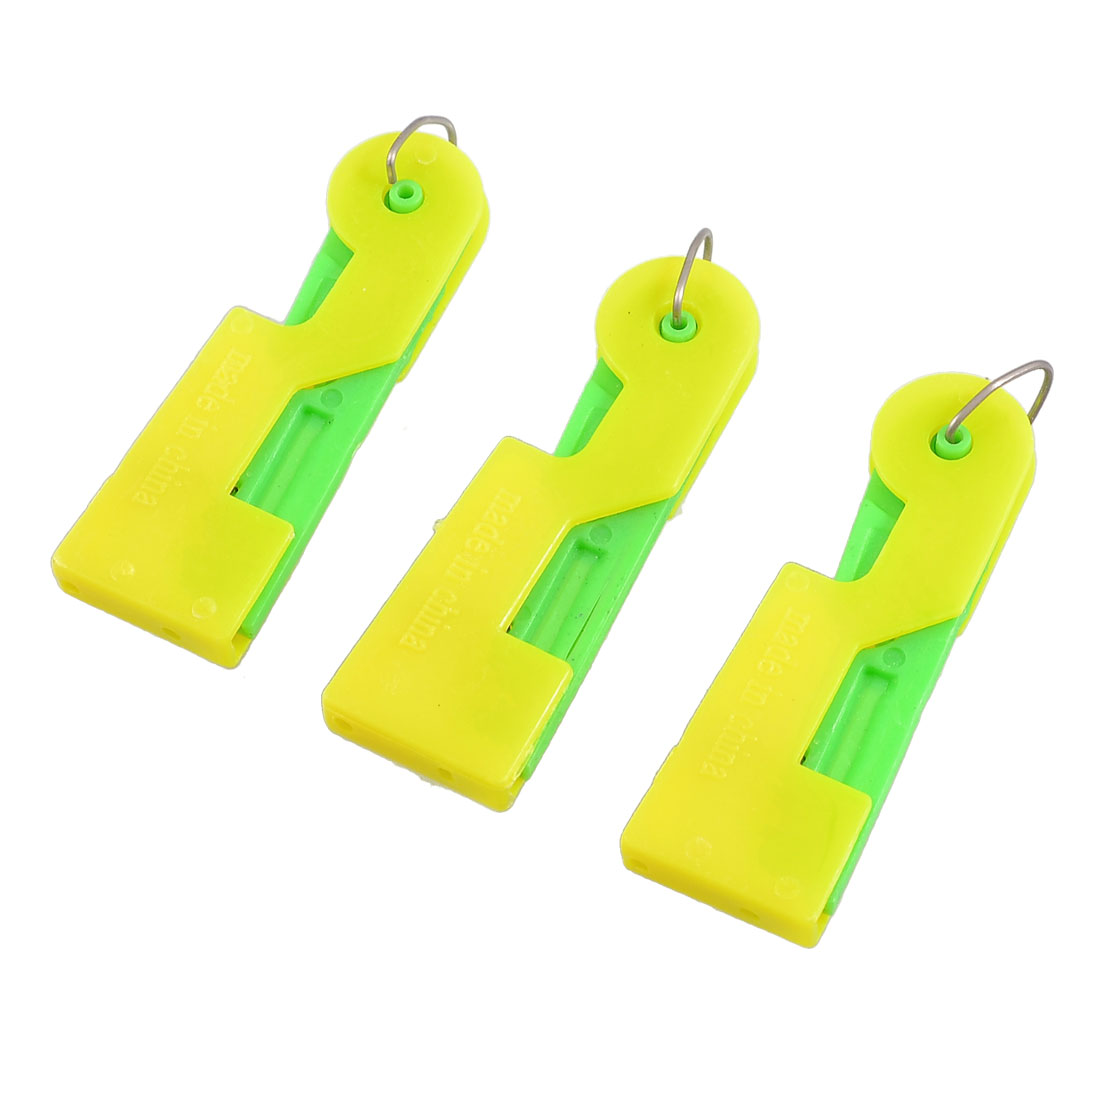 3 Pcs Green Yellow Plastic Sewing Guiding Needle Threader